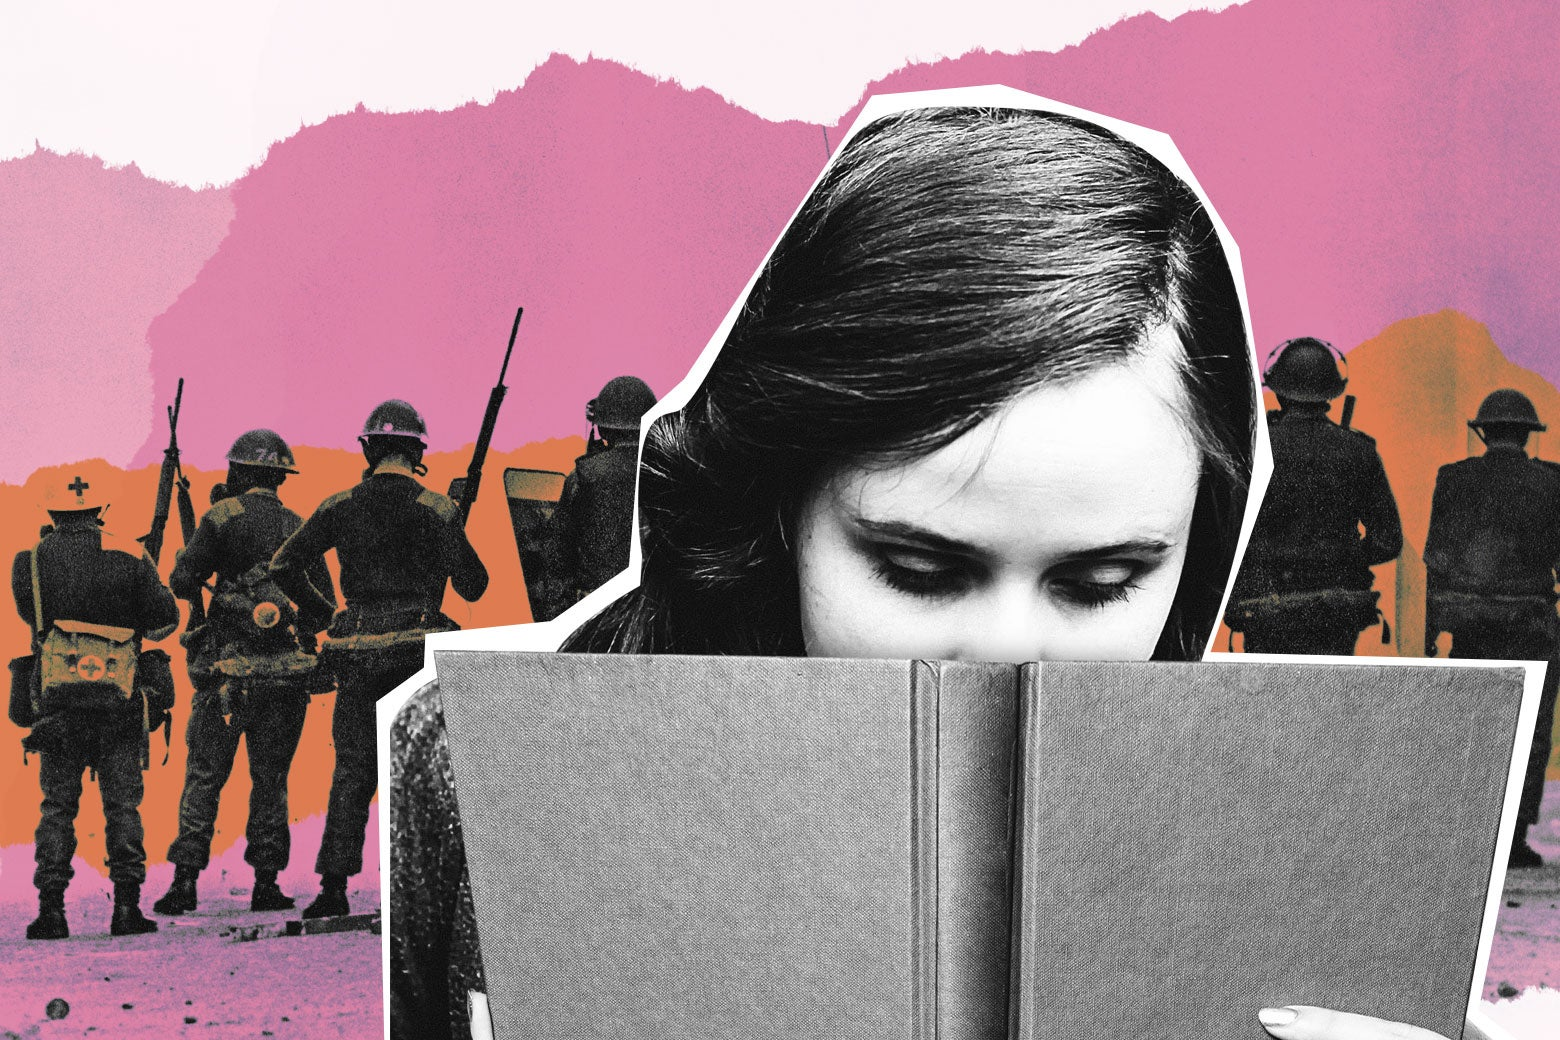 A girl with her nose in a book while soldiers fight behind her.